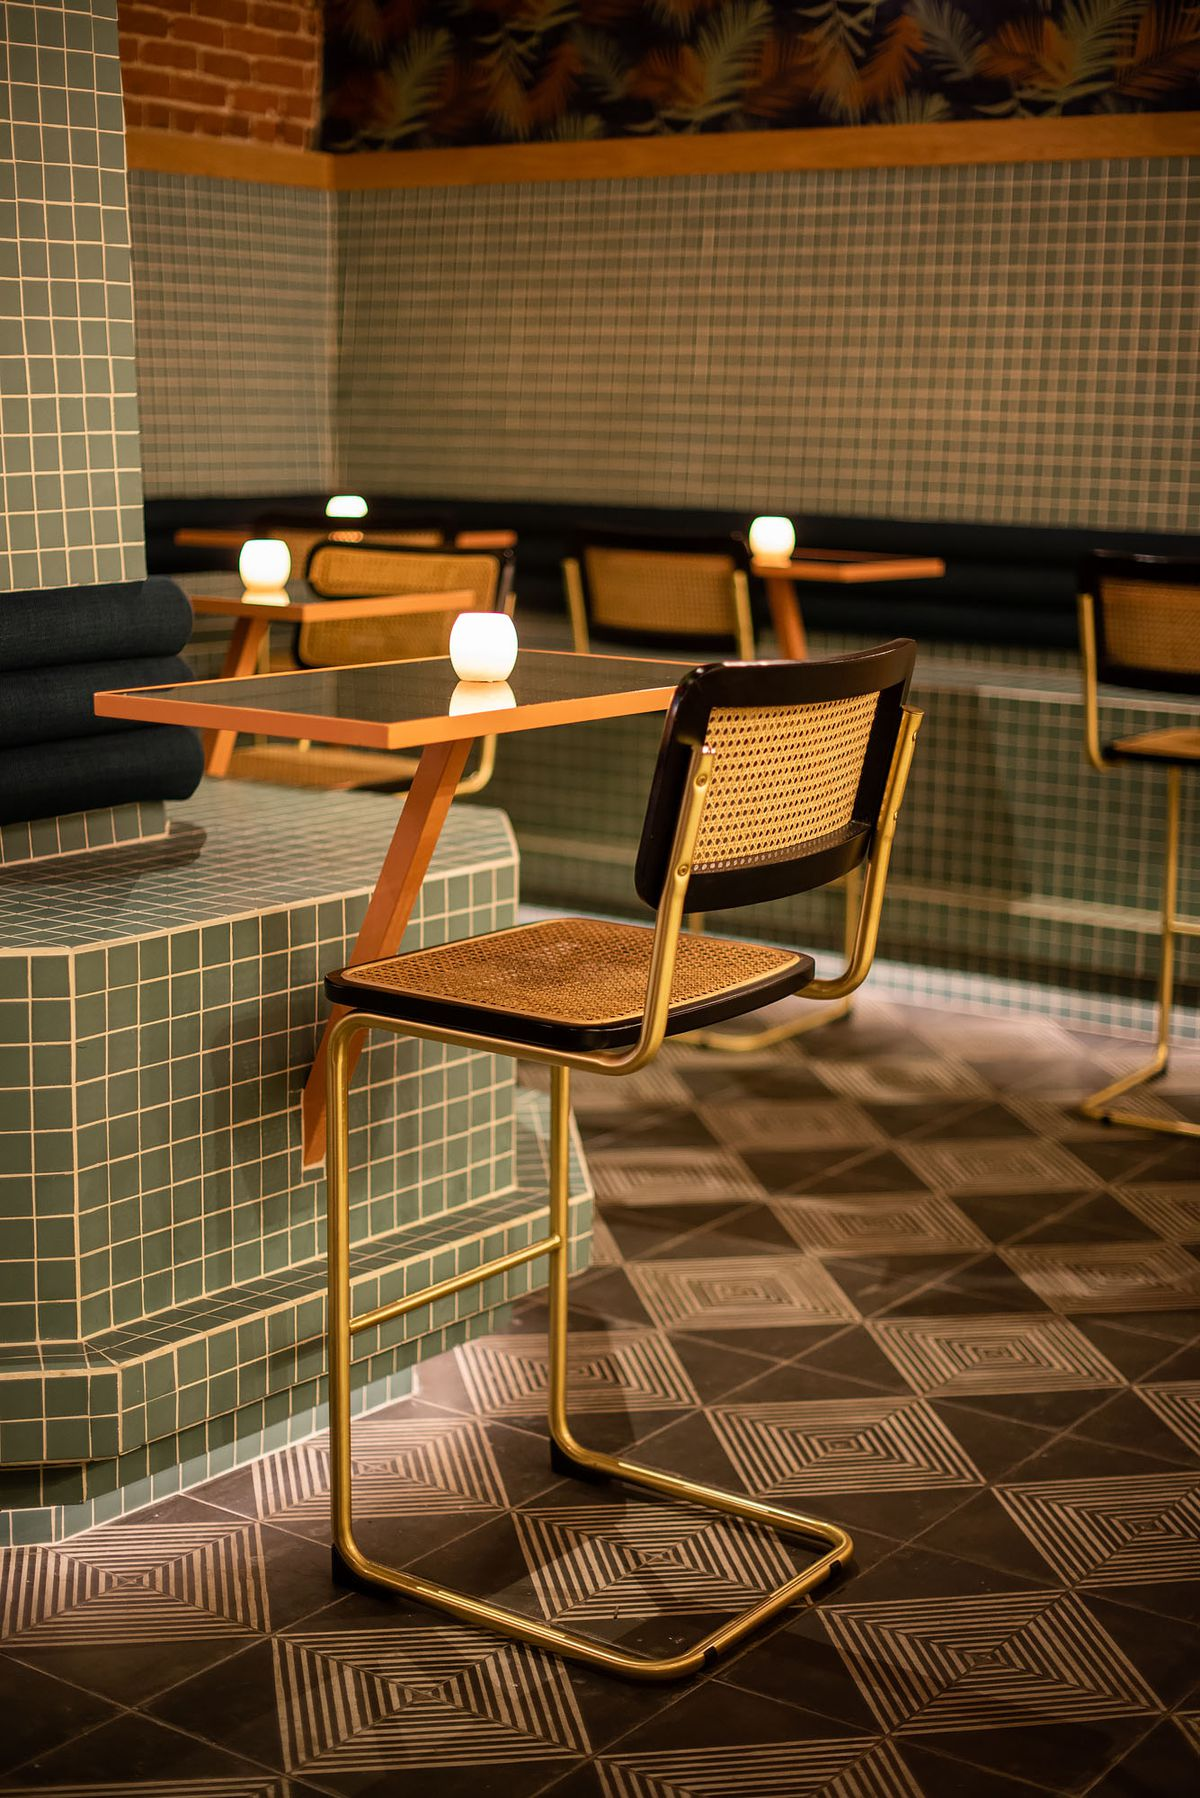 A wicker bar stool for one at a moody cocktail bar.